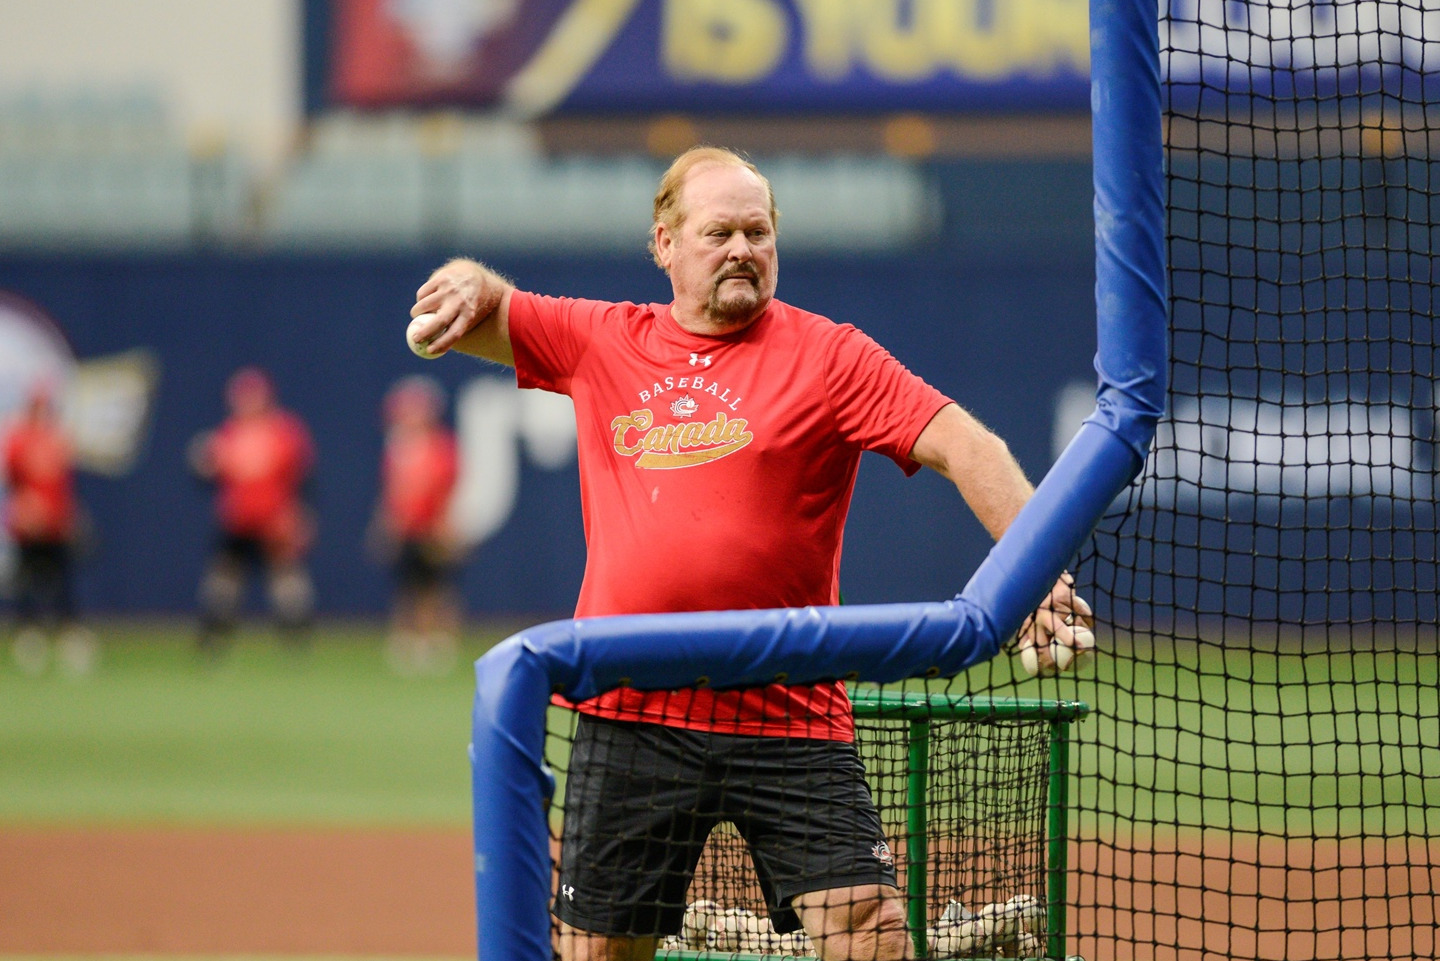 Canada's manager Ernie Whitt throws batting practice